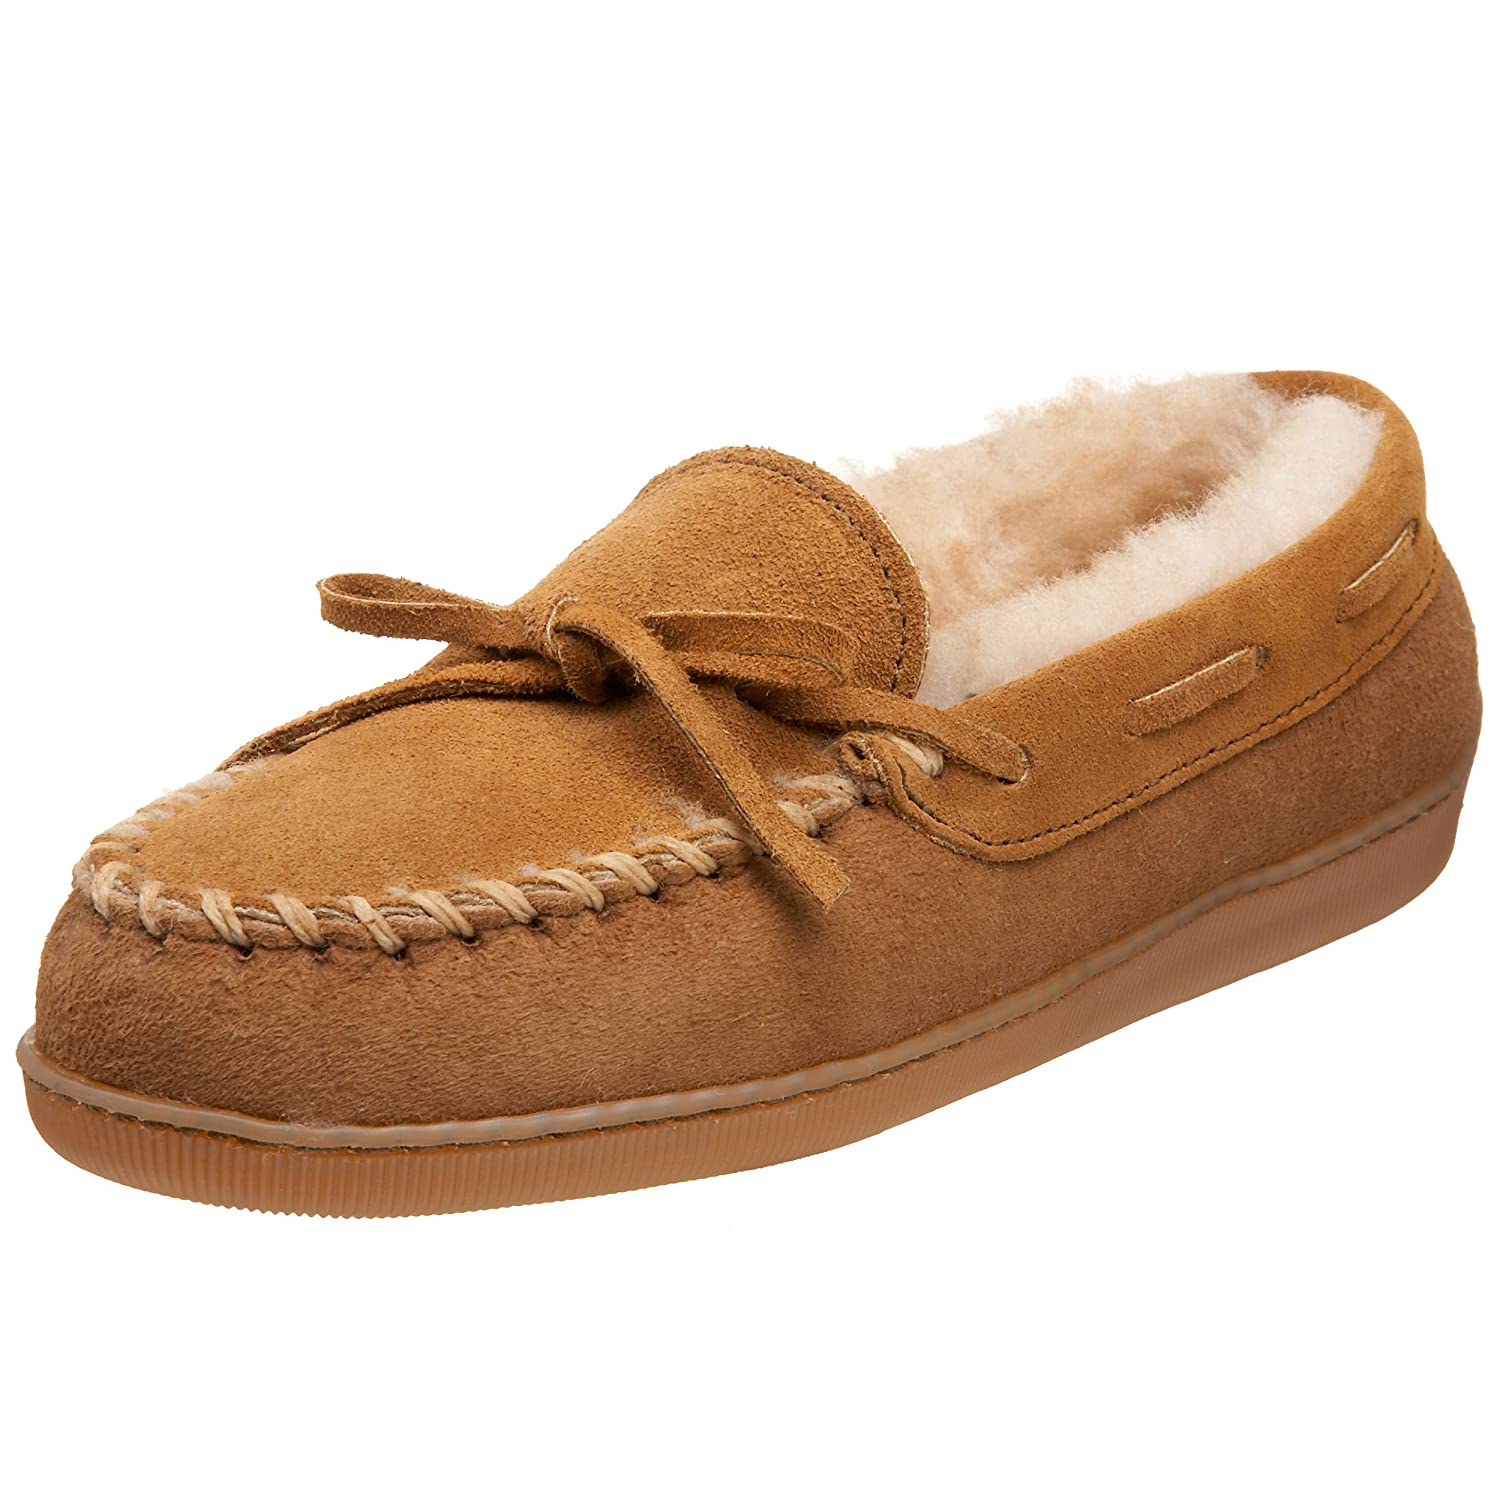 Minnetonka Women's Sheepskin Hardsole Moccasin